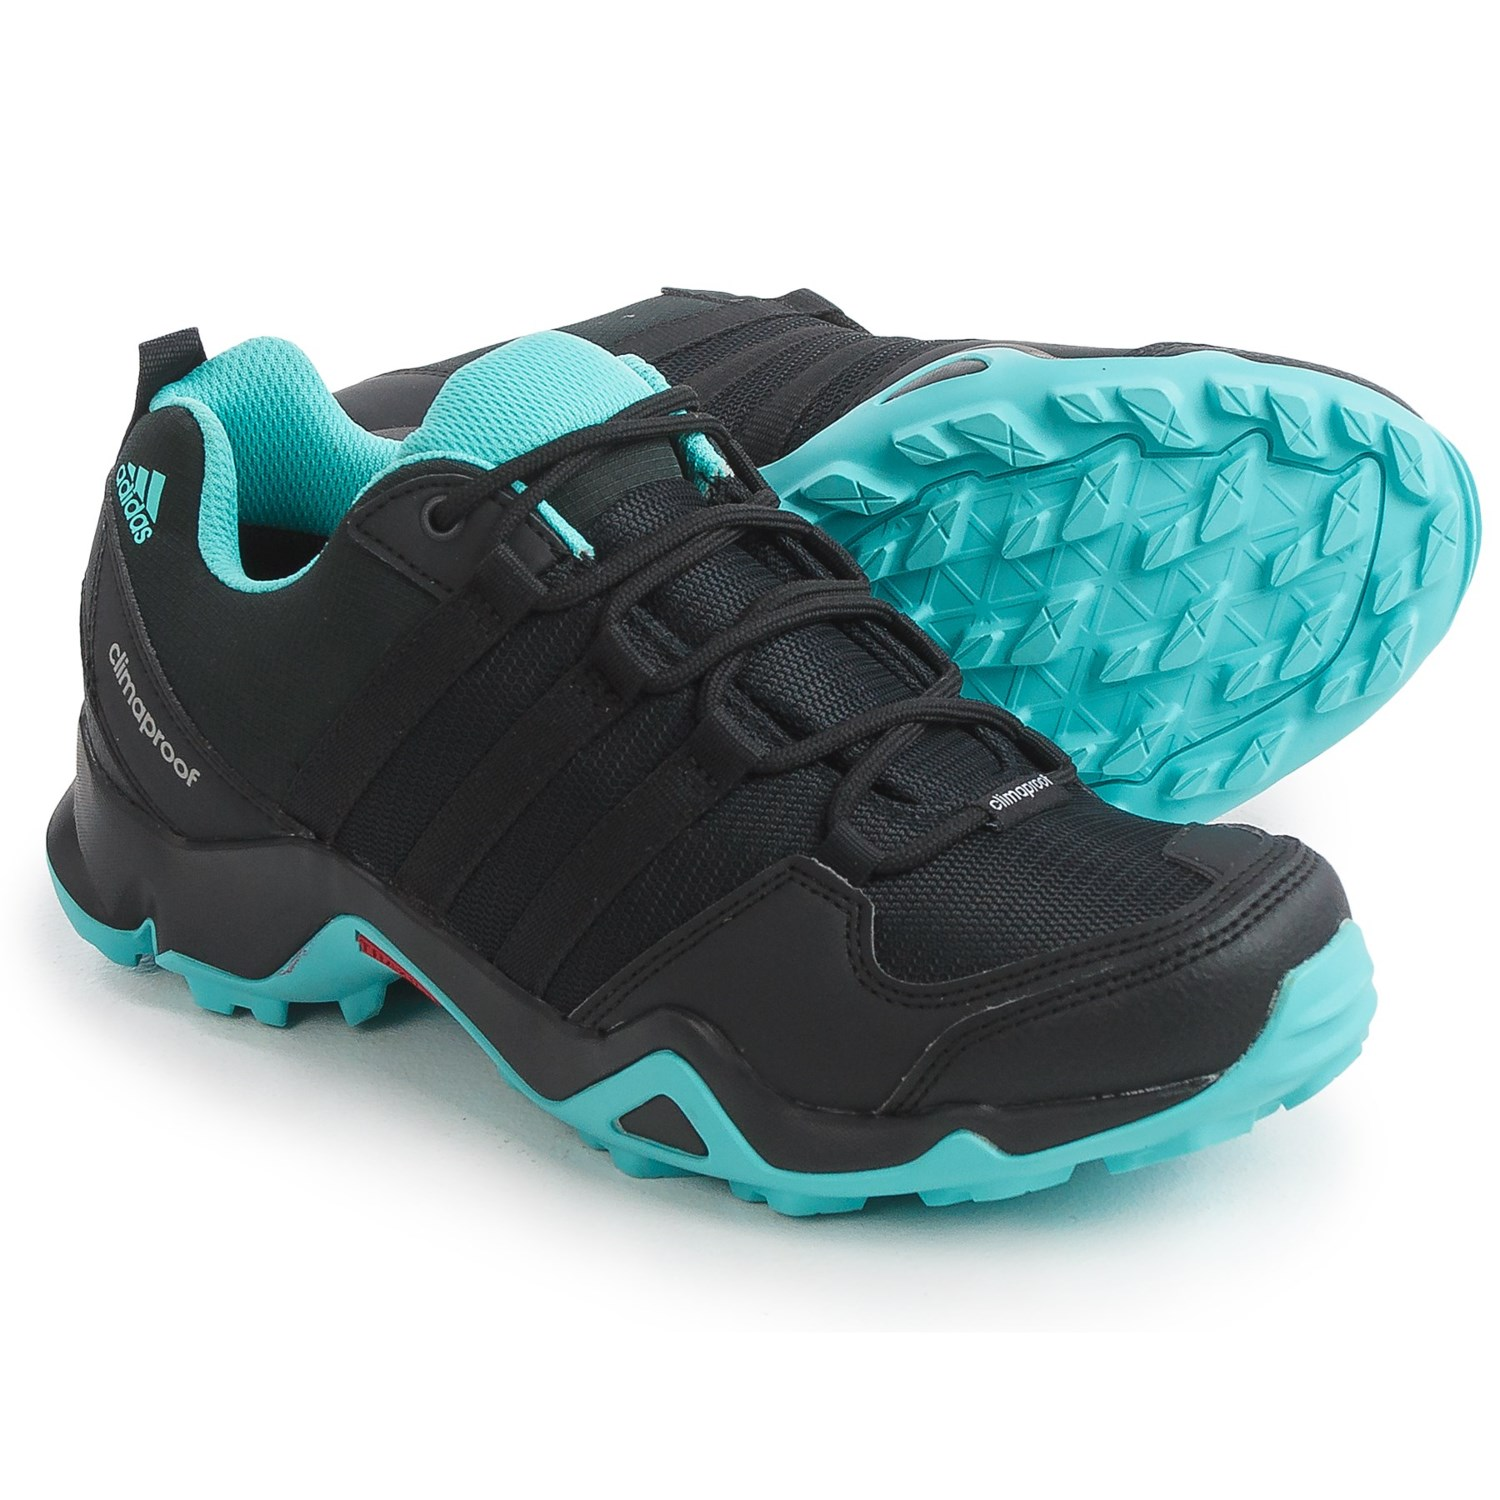 Adidas Outdoor Ax2 Climaproof 174 Hiking Shoes For Women